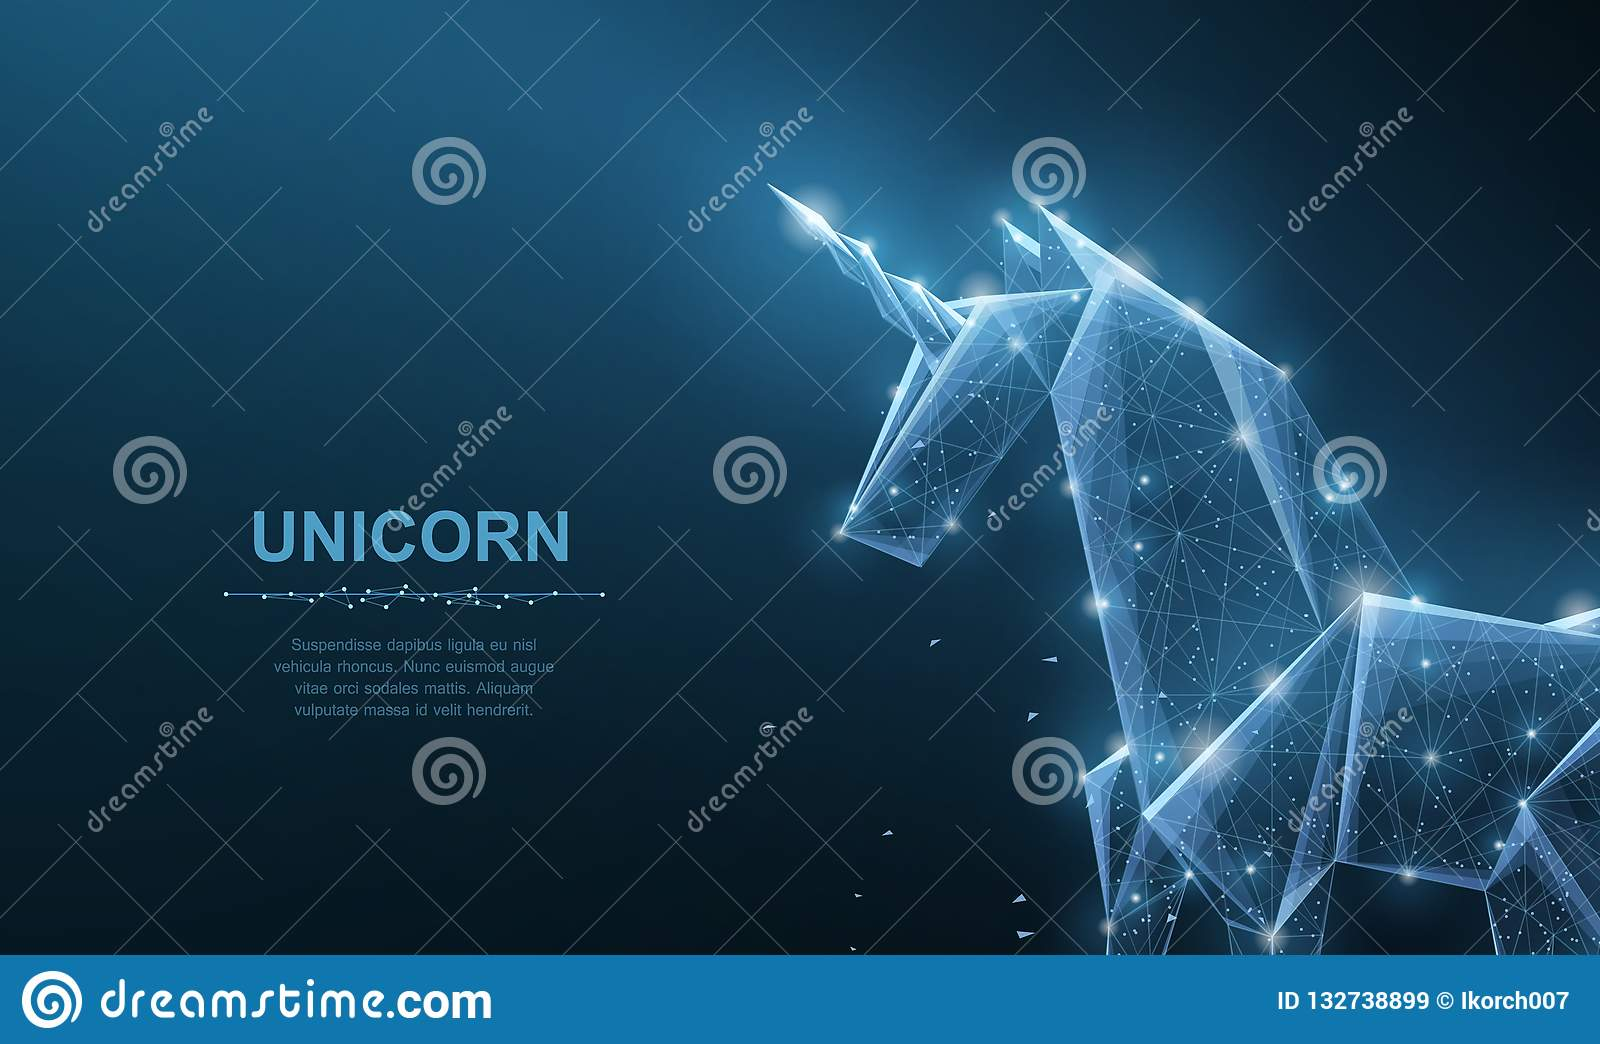 Unicorn. Abstract vector origami paper unicorn isoleted on blue. Magic, fantasy, horse, dream, miracle, believe, wish